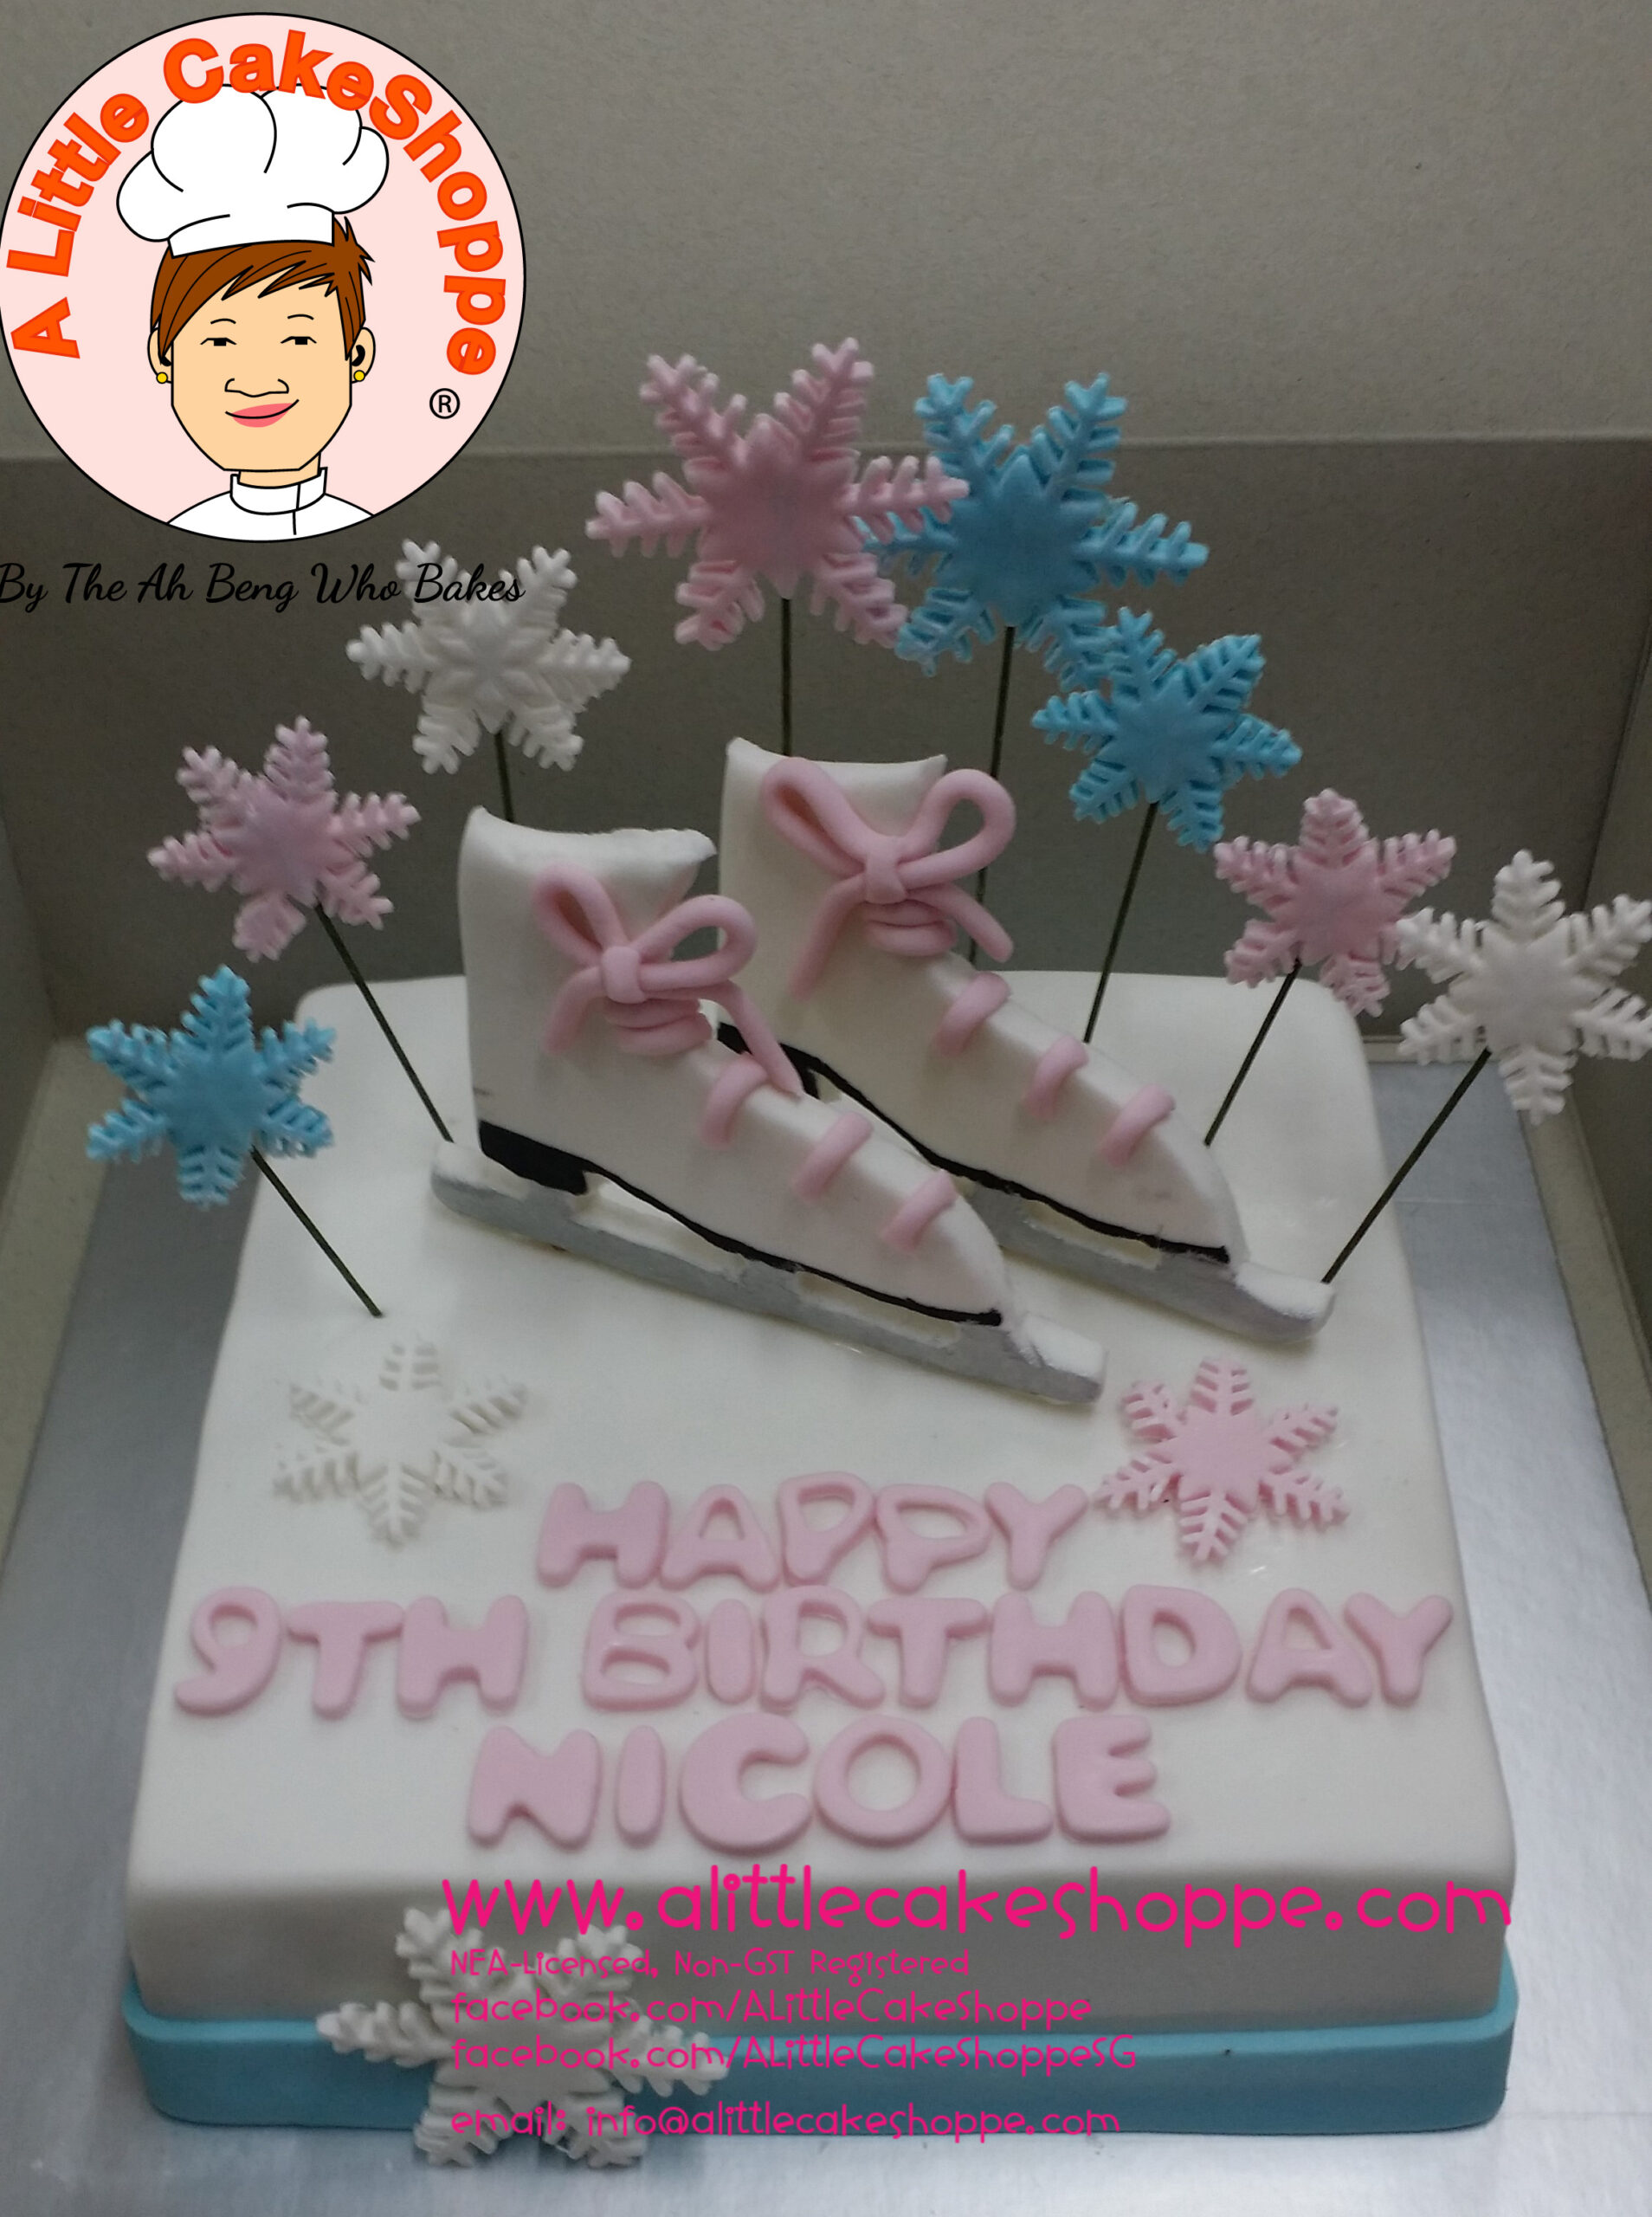 Best Customised Cake Shop Singapore custom cake 2D 3D birthday cake cupcakes desserts wedding corporate events anniversary 1st birthday 21st birthday fondant fresh cream buttercream cakes alittlecakeshoppe a little cake shoppe compliments review singapore bakers SG cake shop cakeshop ah beng who bakes sports ice skating